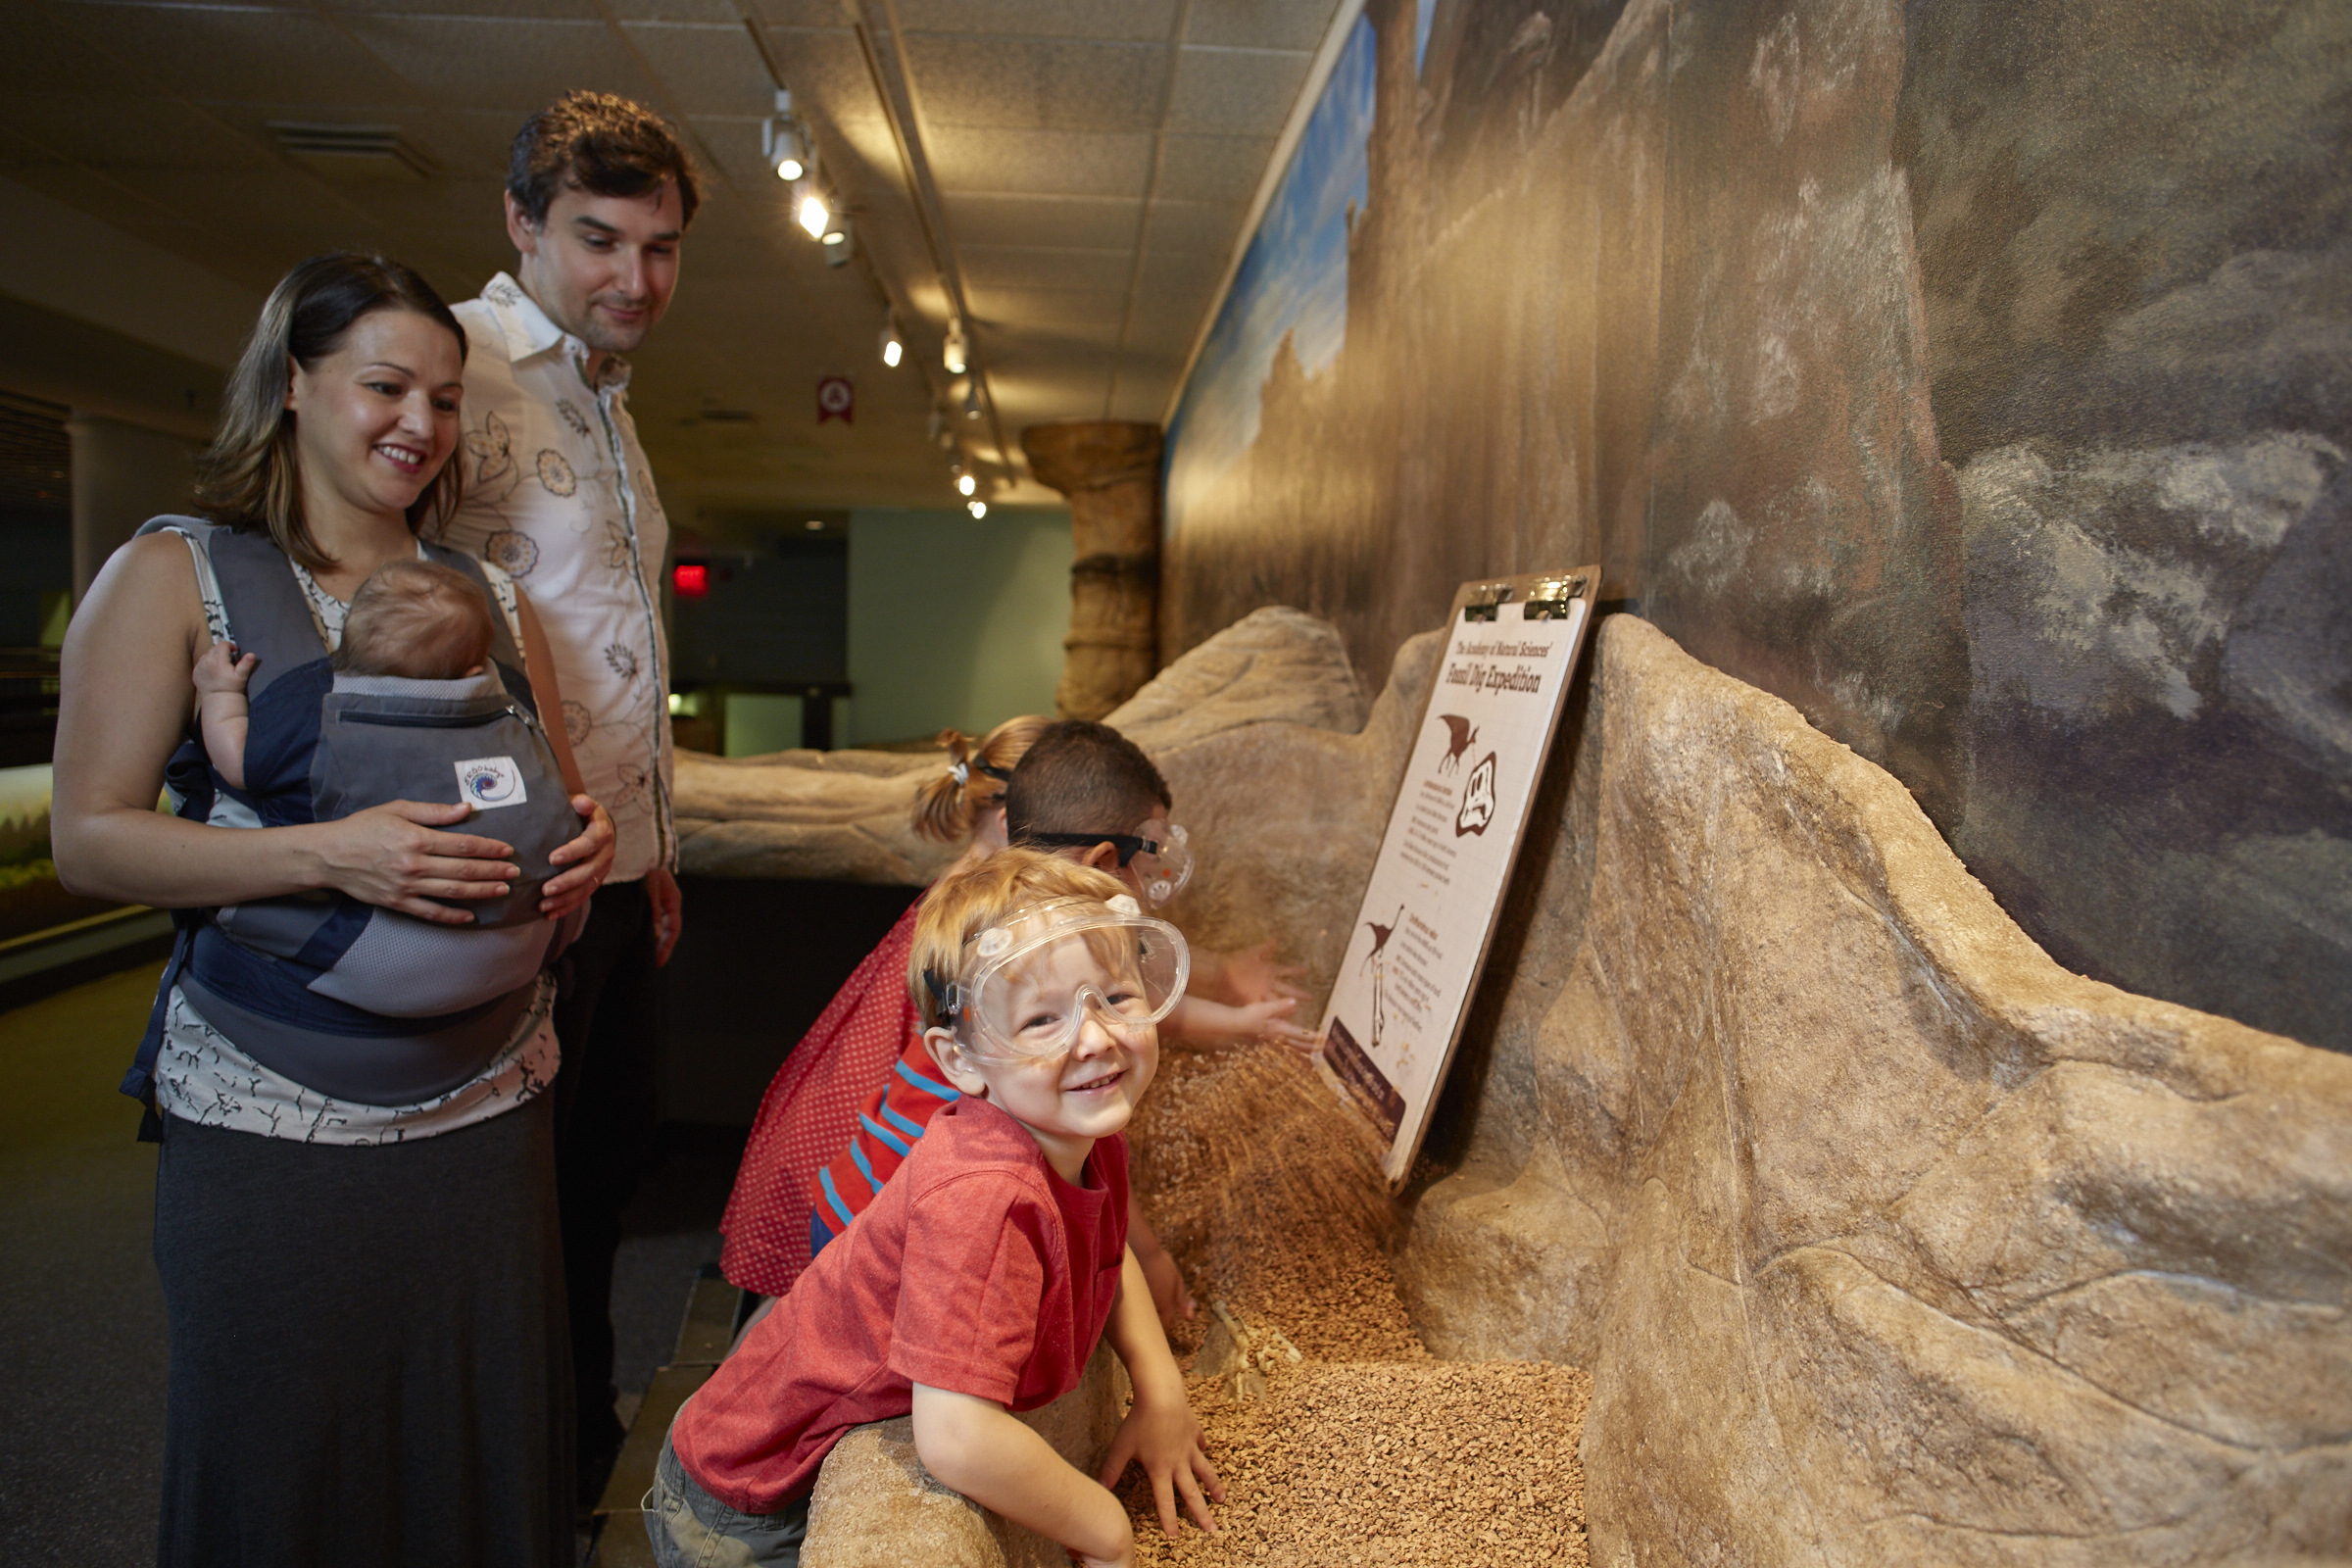 Parents and kids enjoy hands-on exhibits